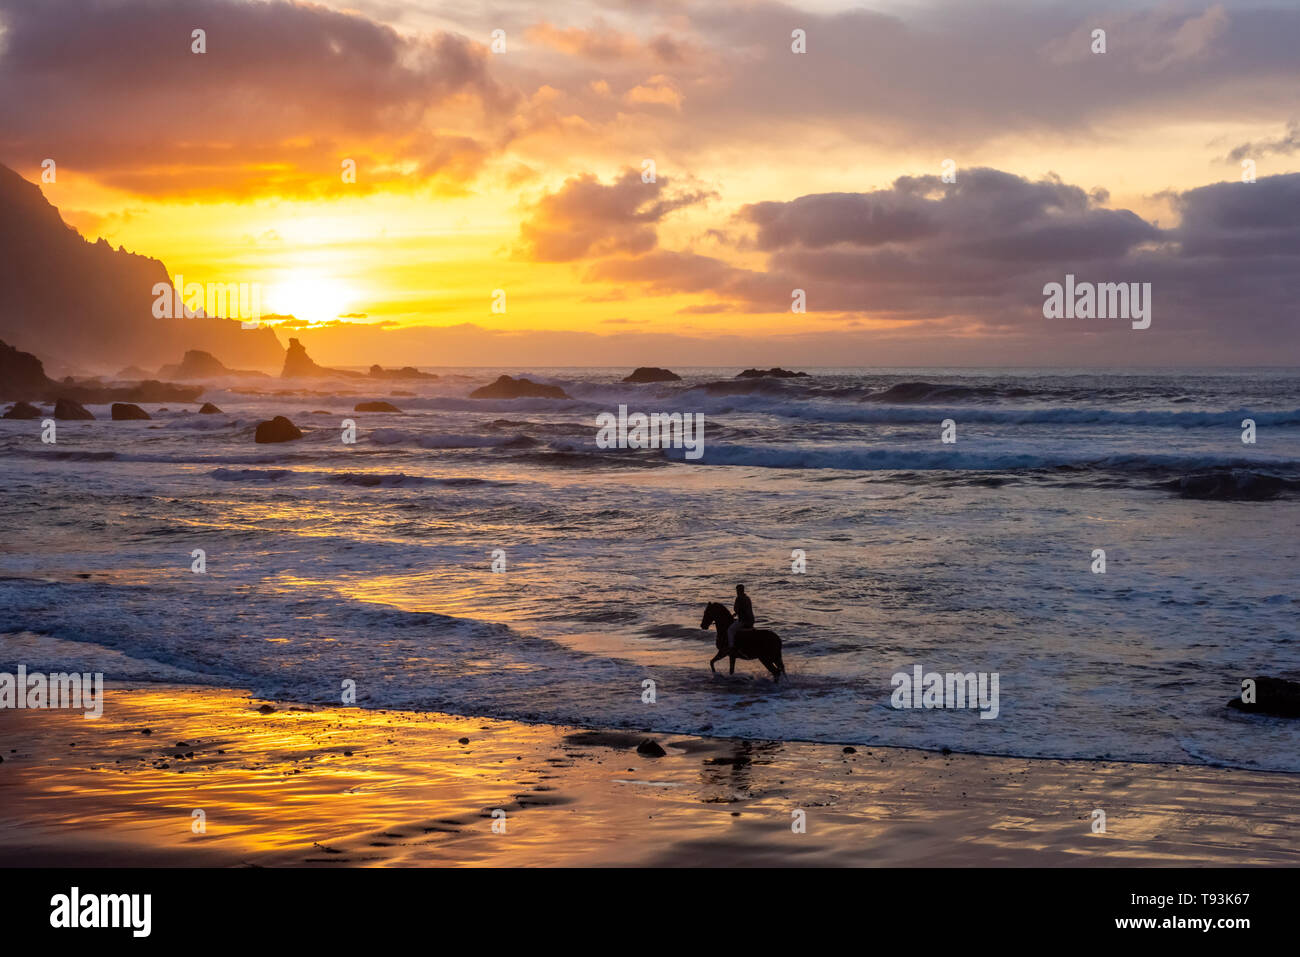 Horseriding at ocean beach on sunset background. Canary island. - Stock Image